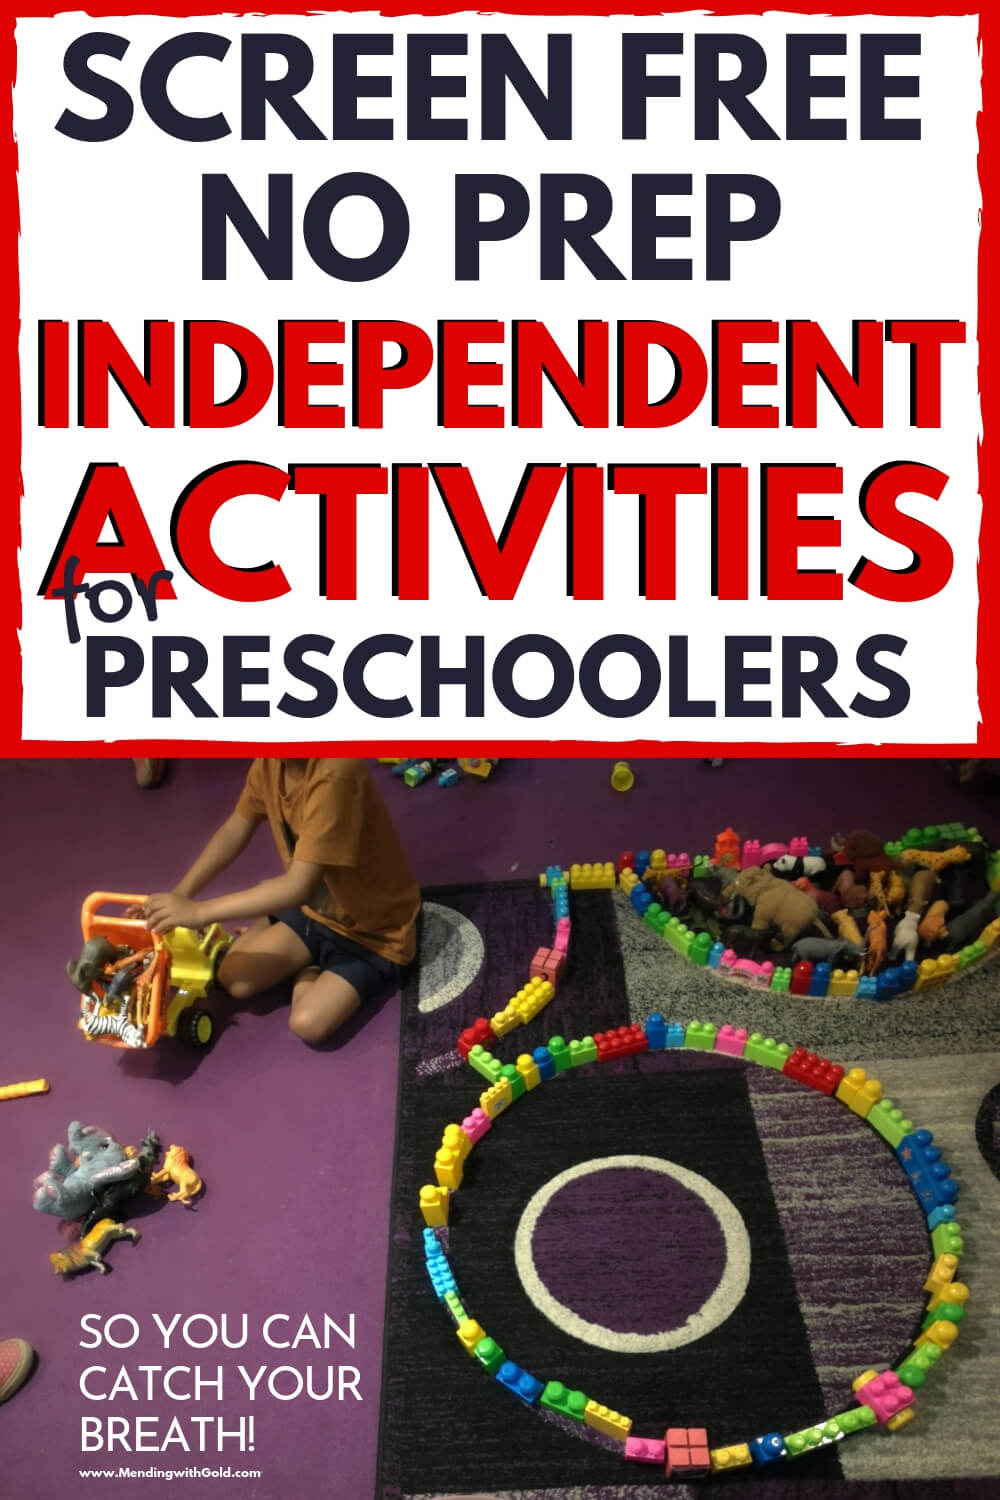 independent screen free activities for pre-schoolers pin 2